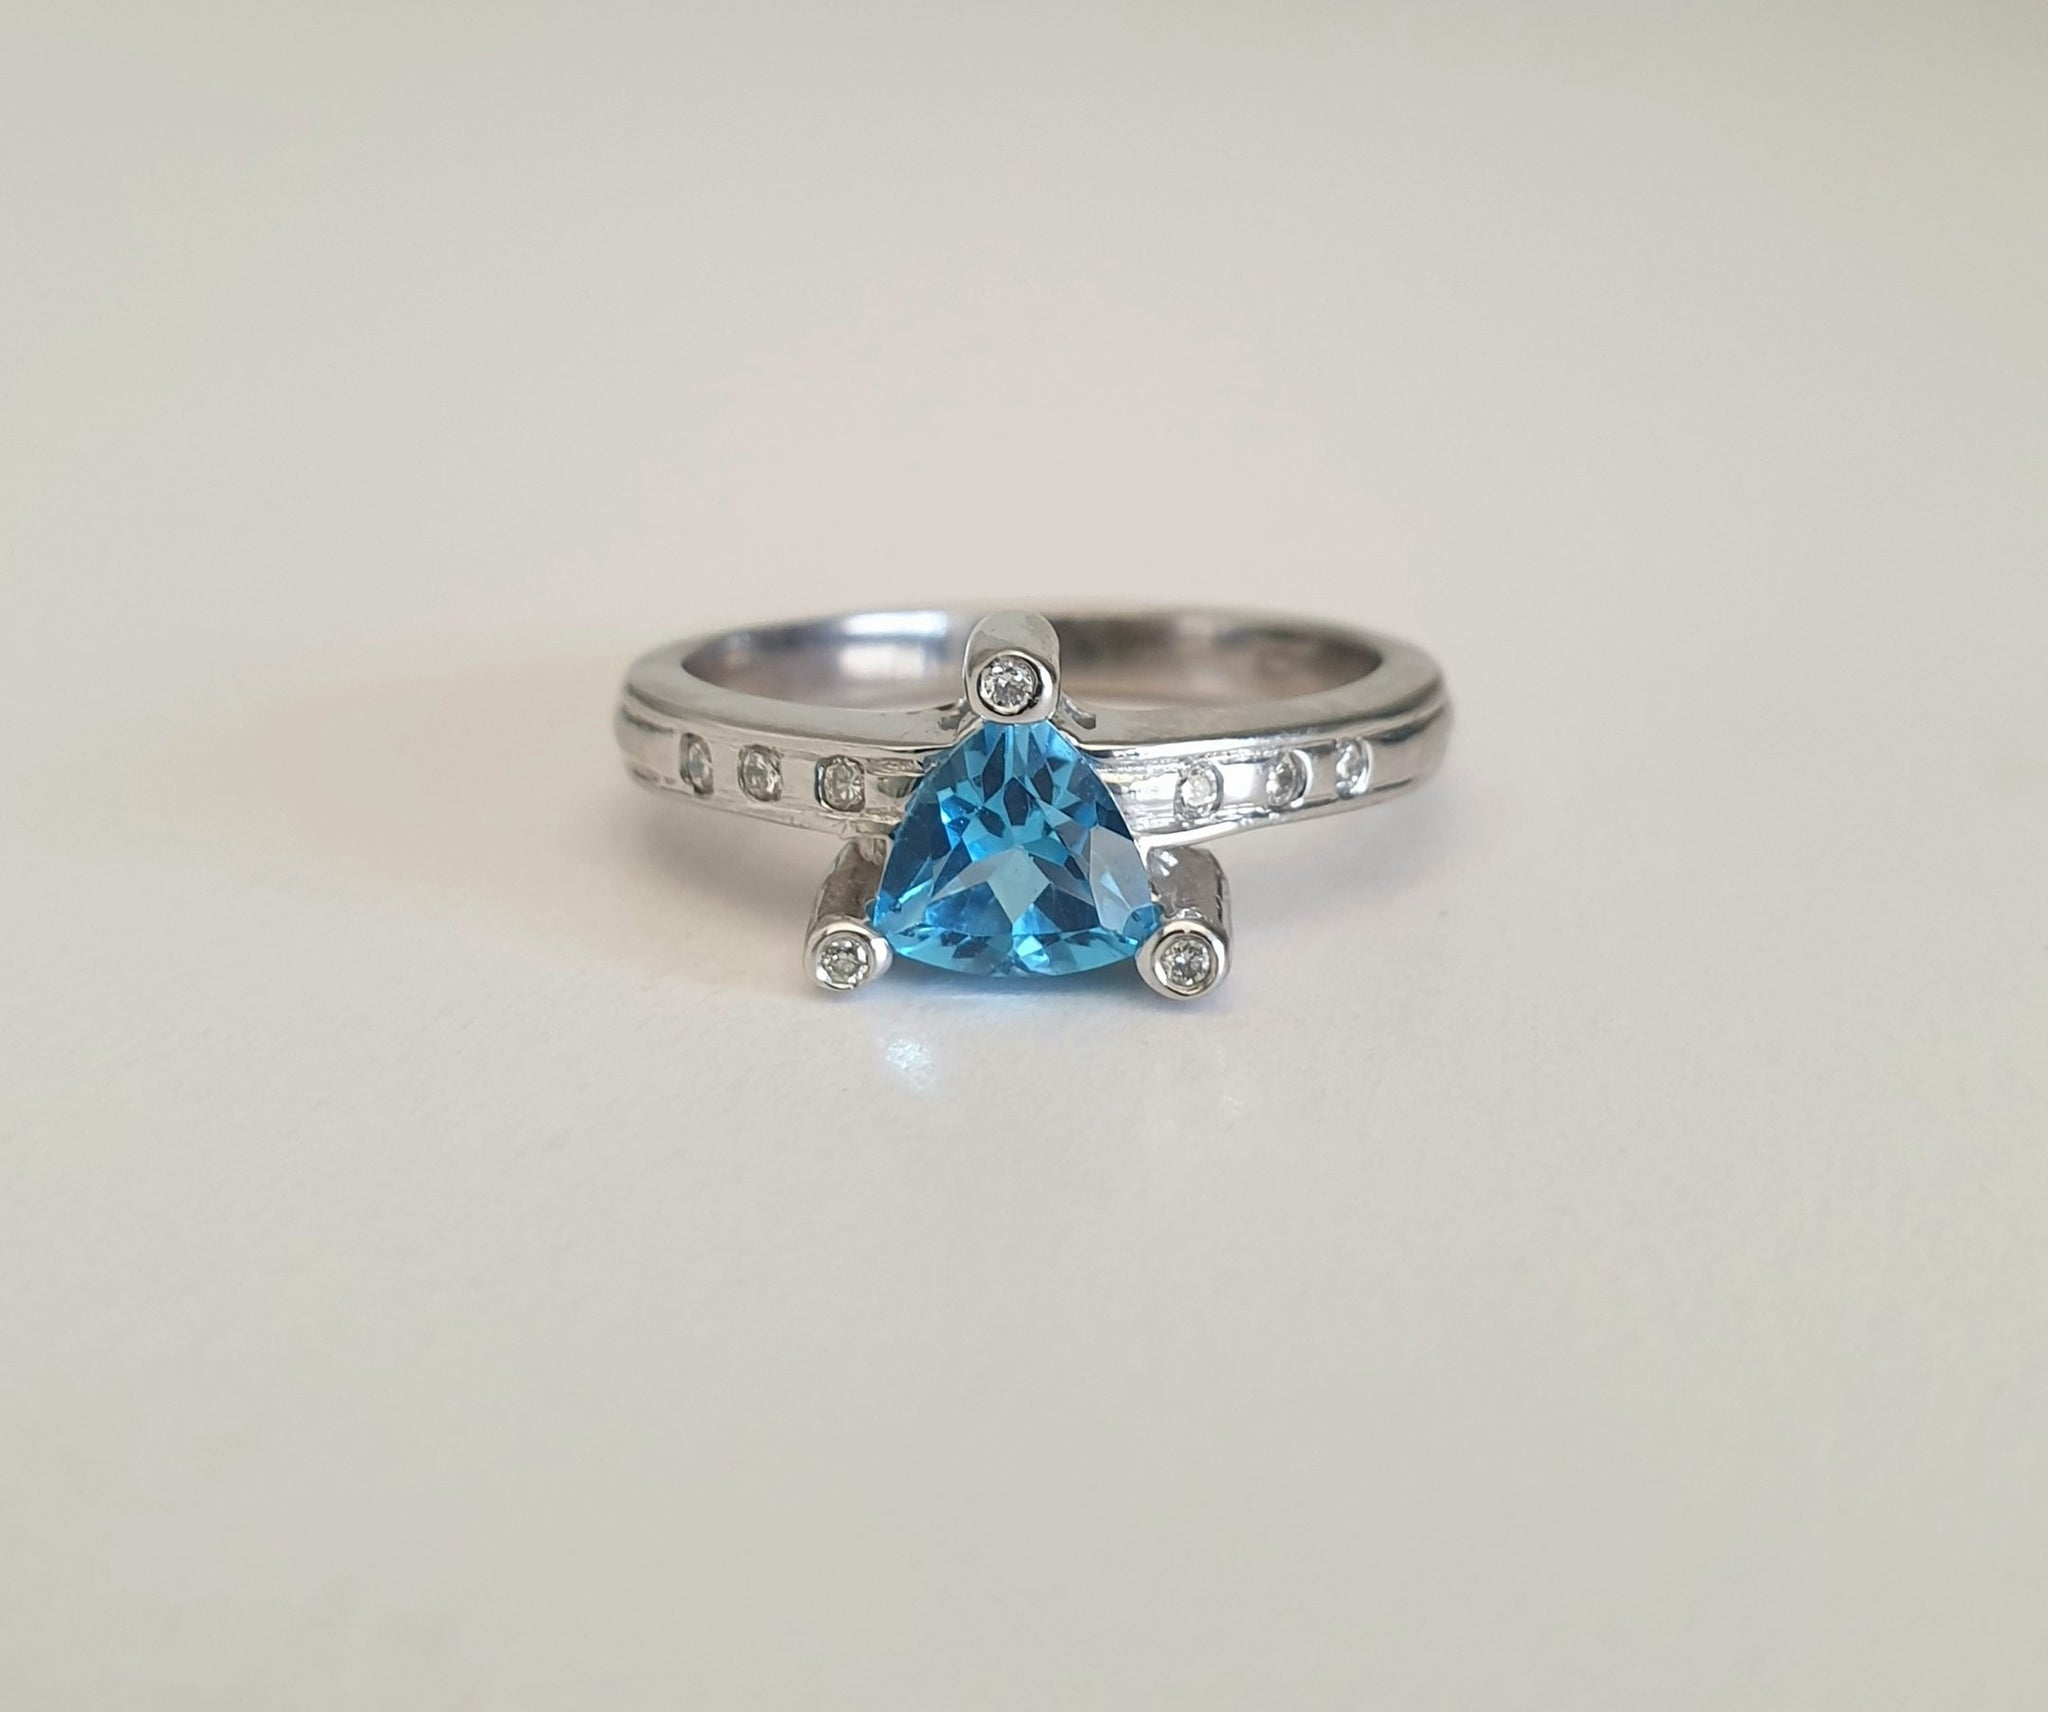 Trilliant Cut Blue Topaz With Diamond Point Accents